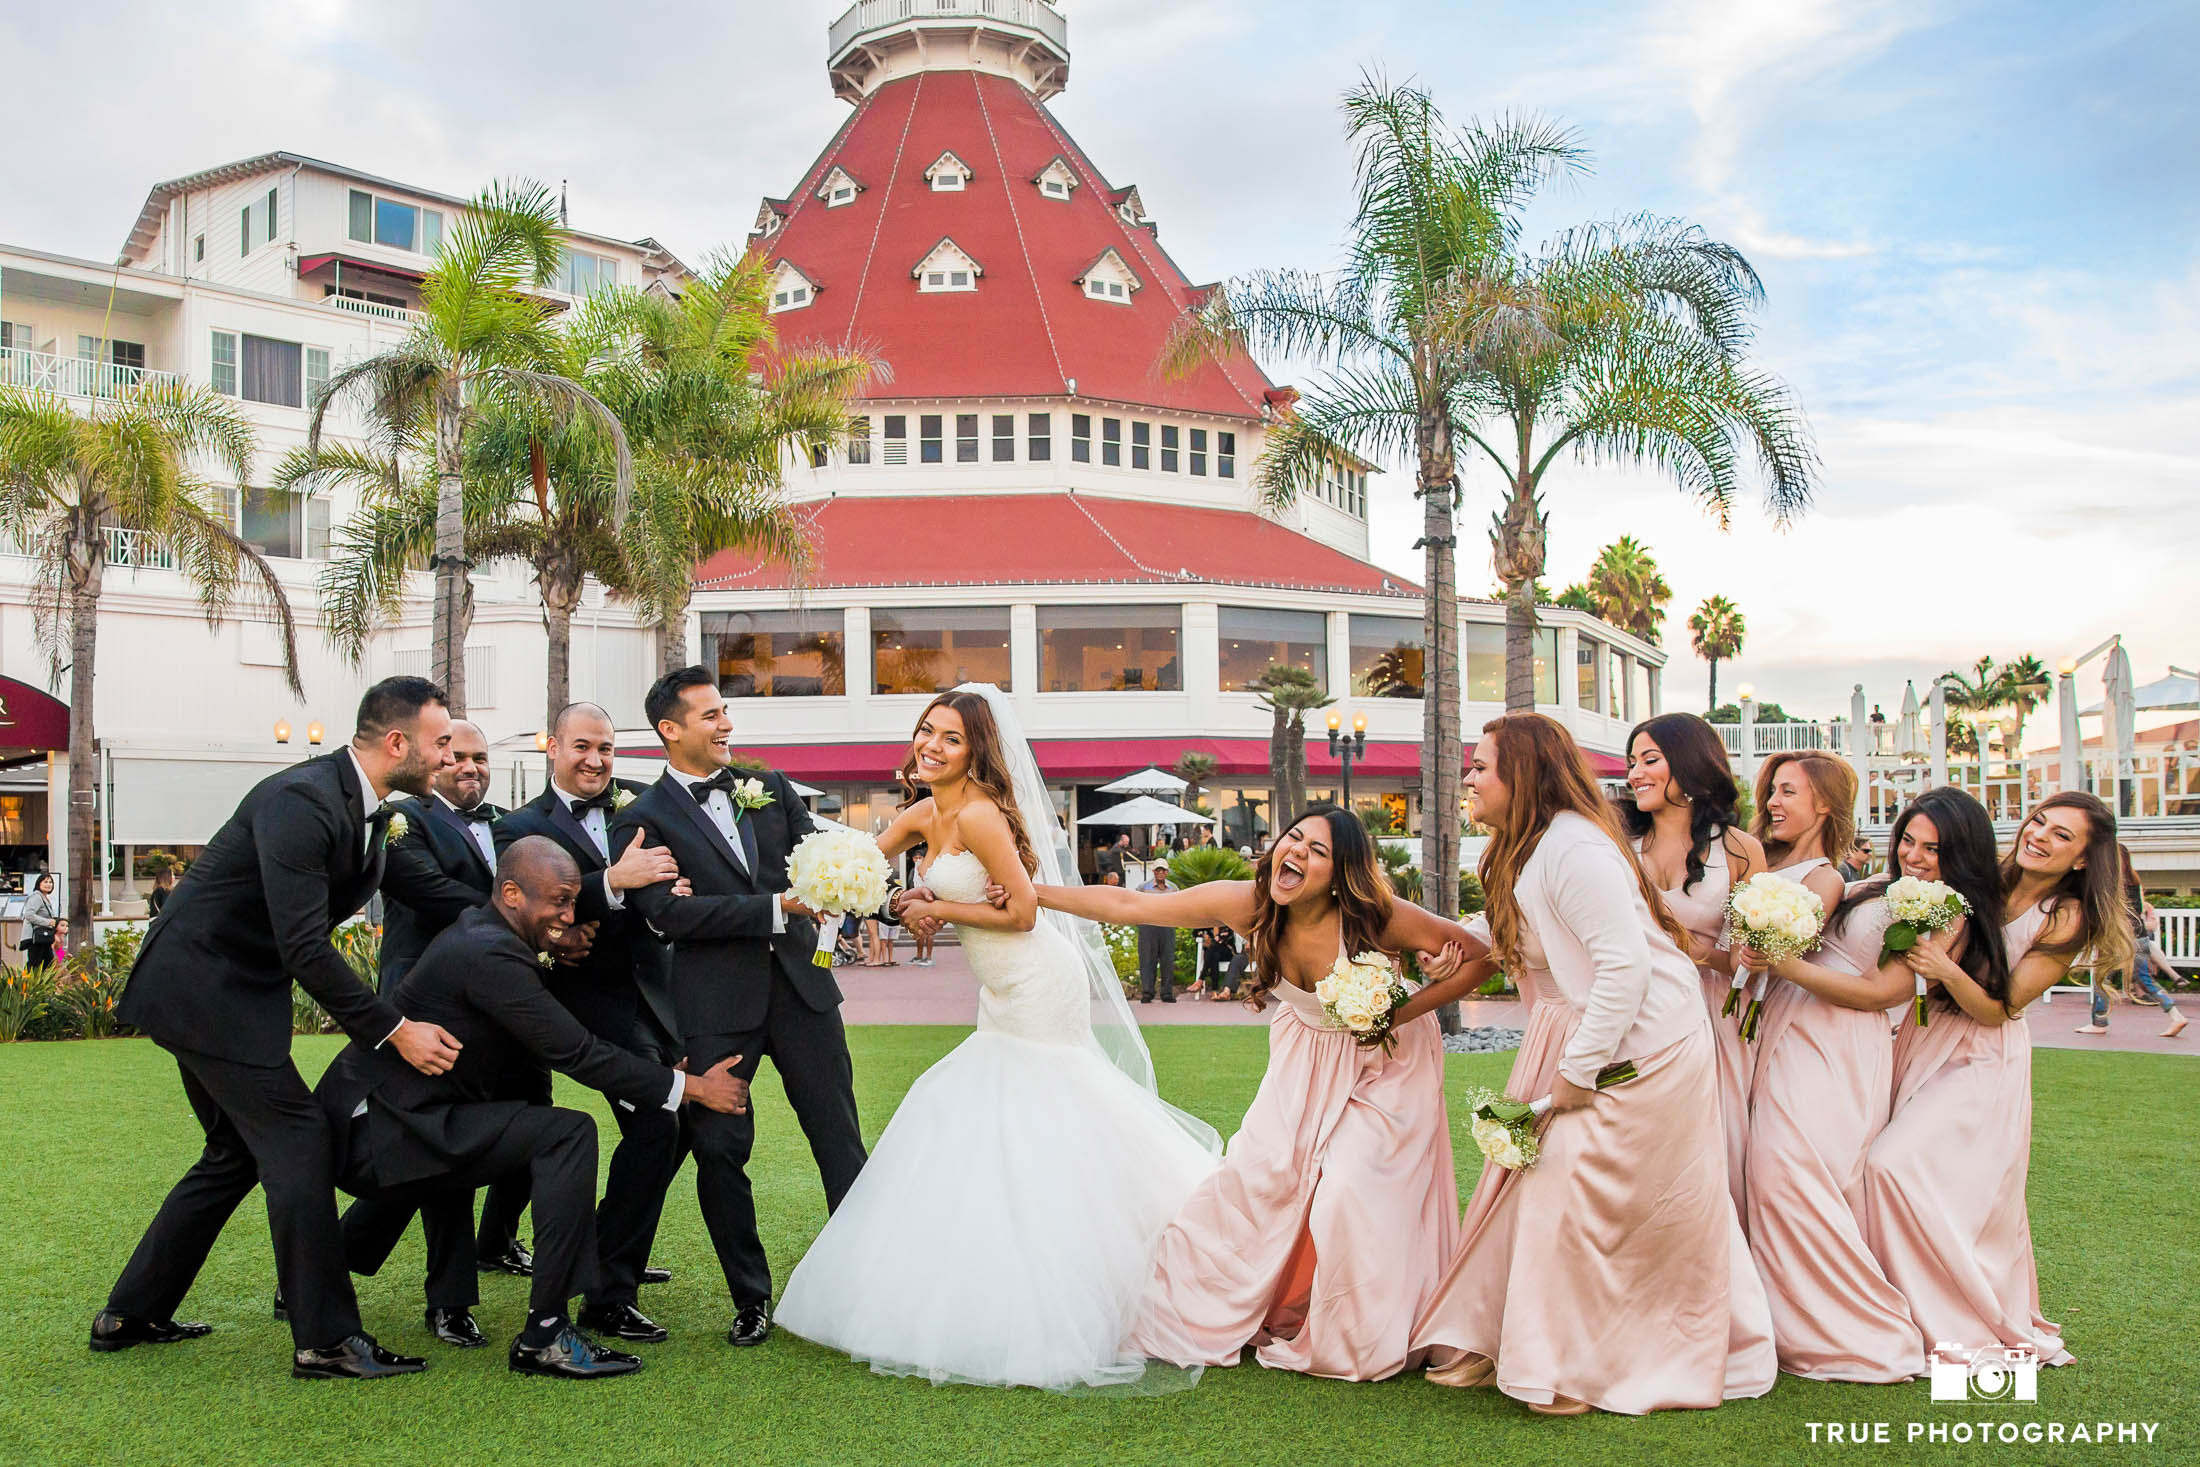 Bridal Party pulling apart wedding couple for fun portrait